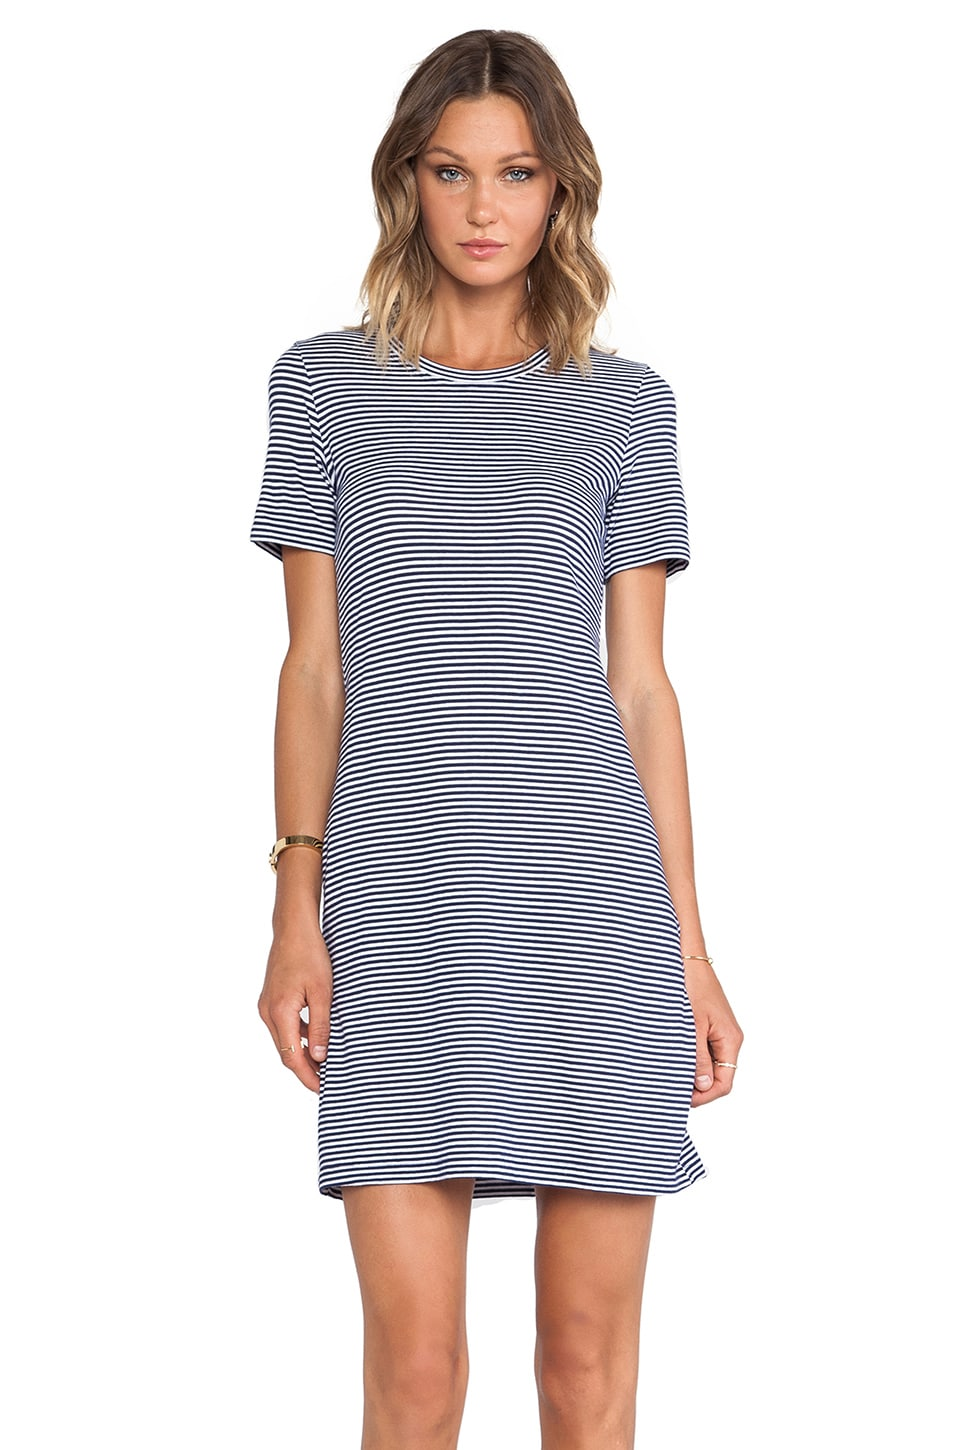 Theory Cherry Dress in Denim Blue & White